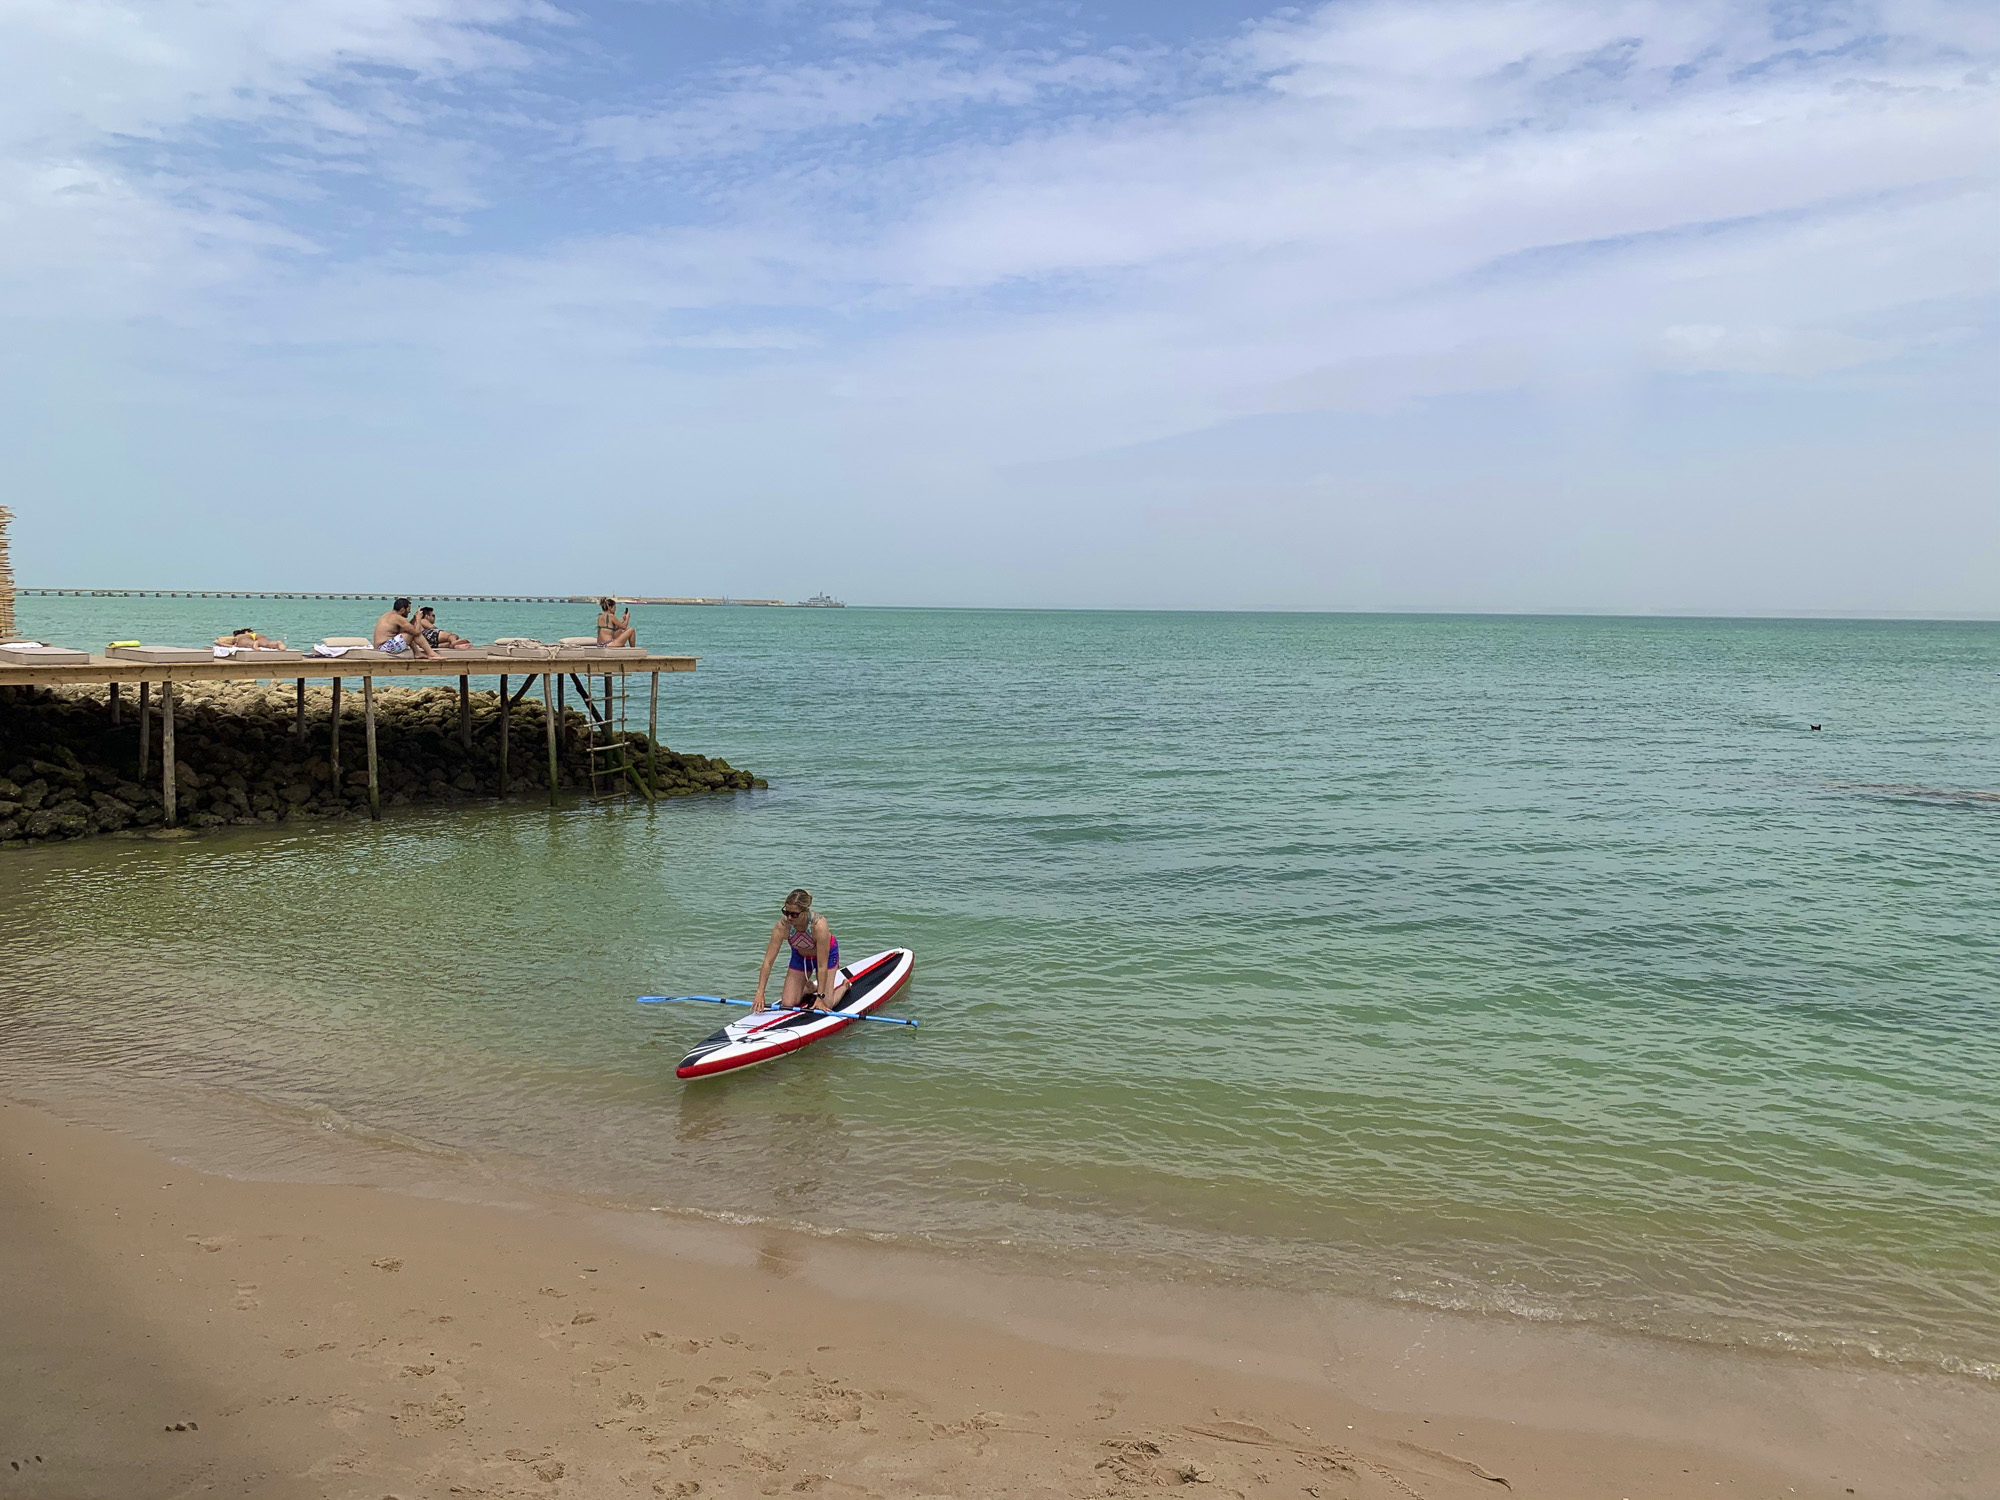 Le Palais Rhoul Dakhla | hotel spa | stand up paddle face sur la mer